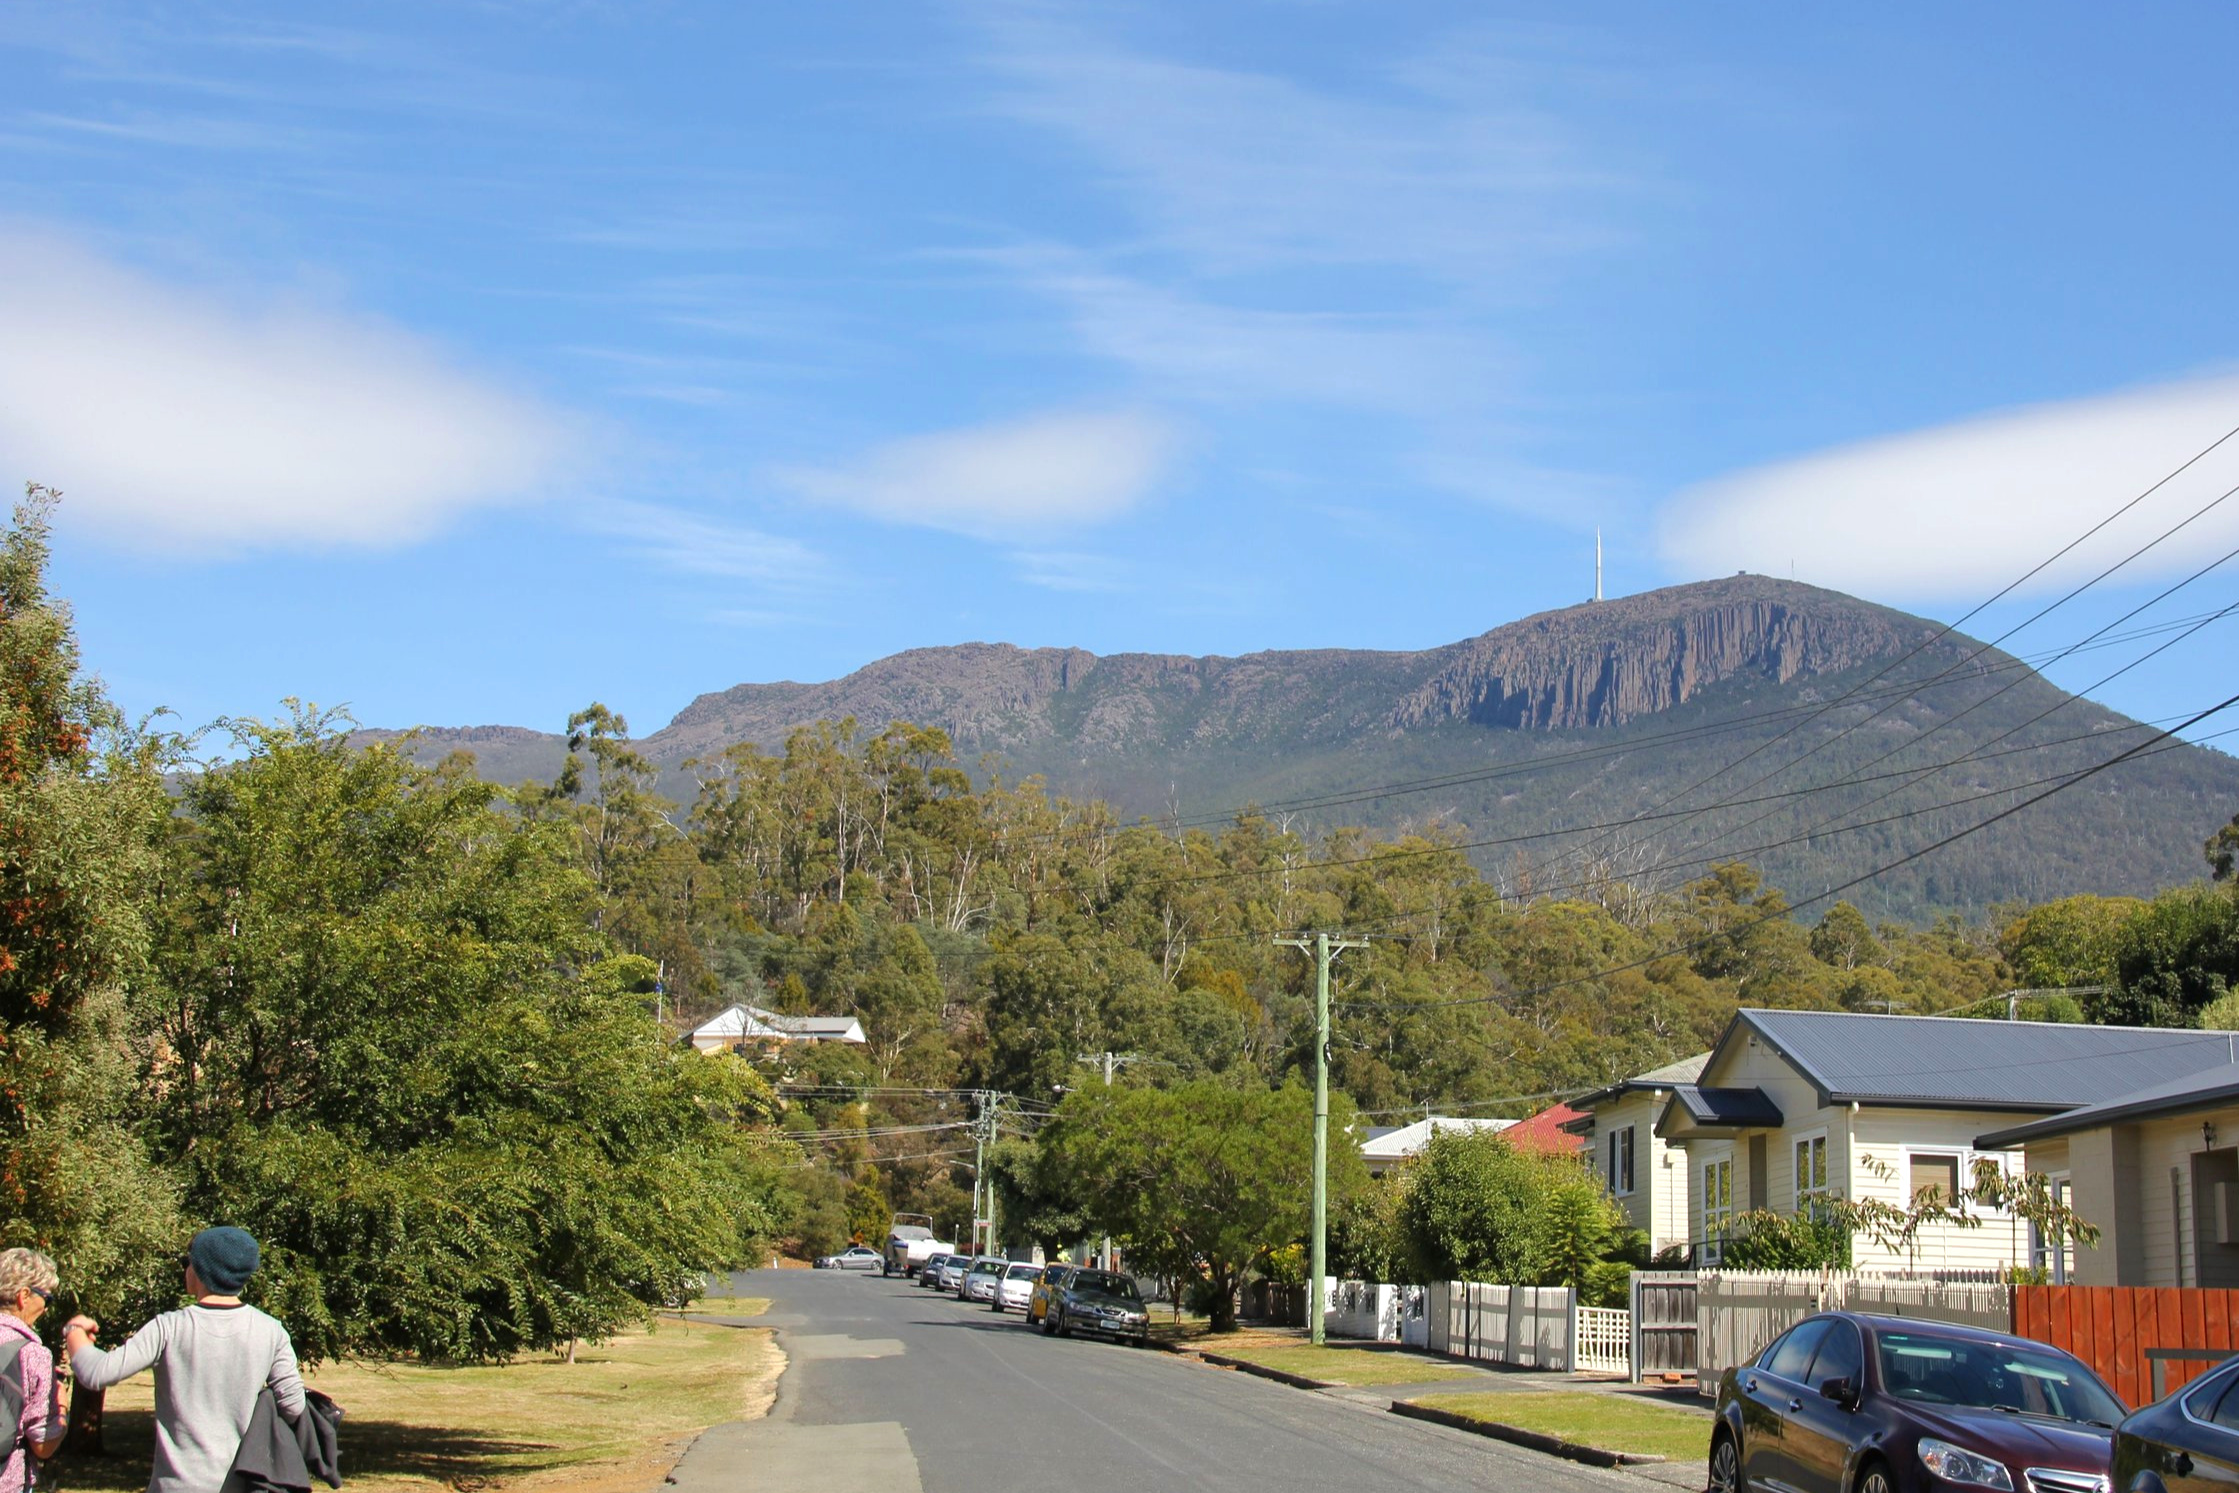 more views of kunanyi/mt wellington from behind the female factory